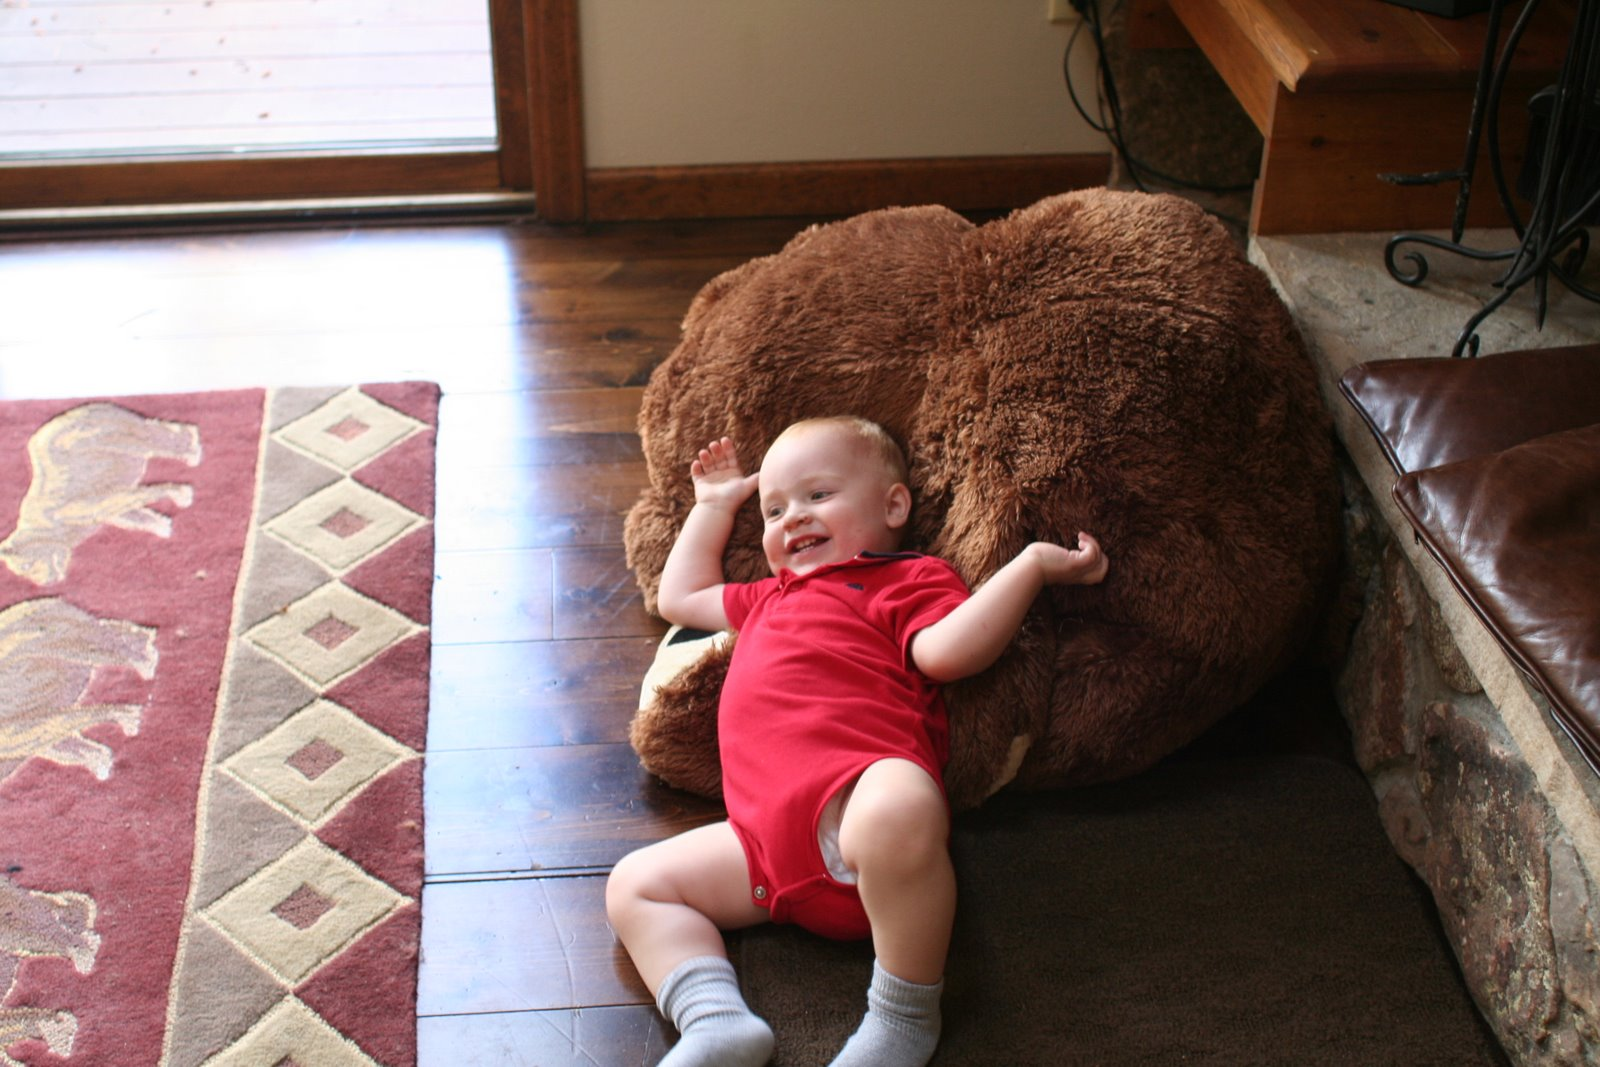 Spencer also likes playing with the big fuzzy bear at the cabin